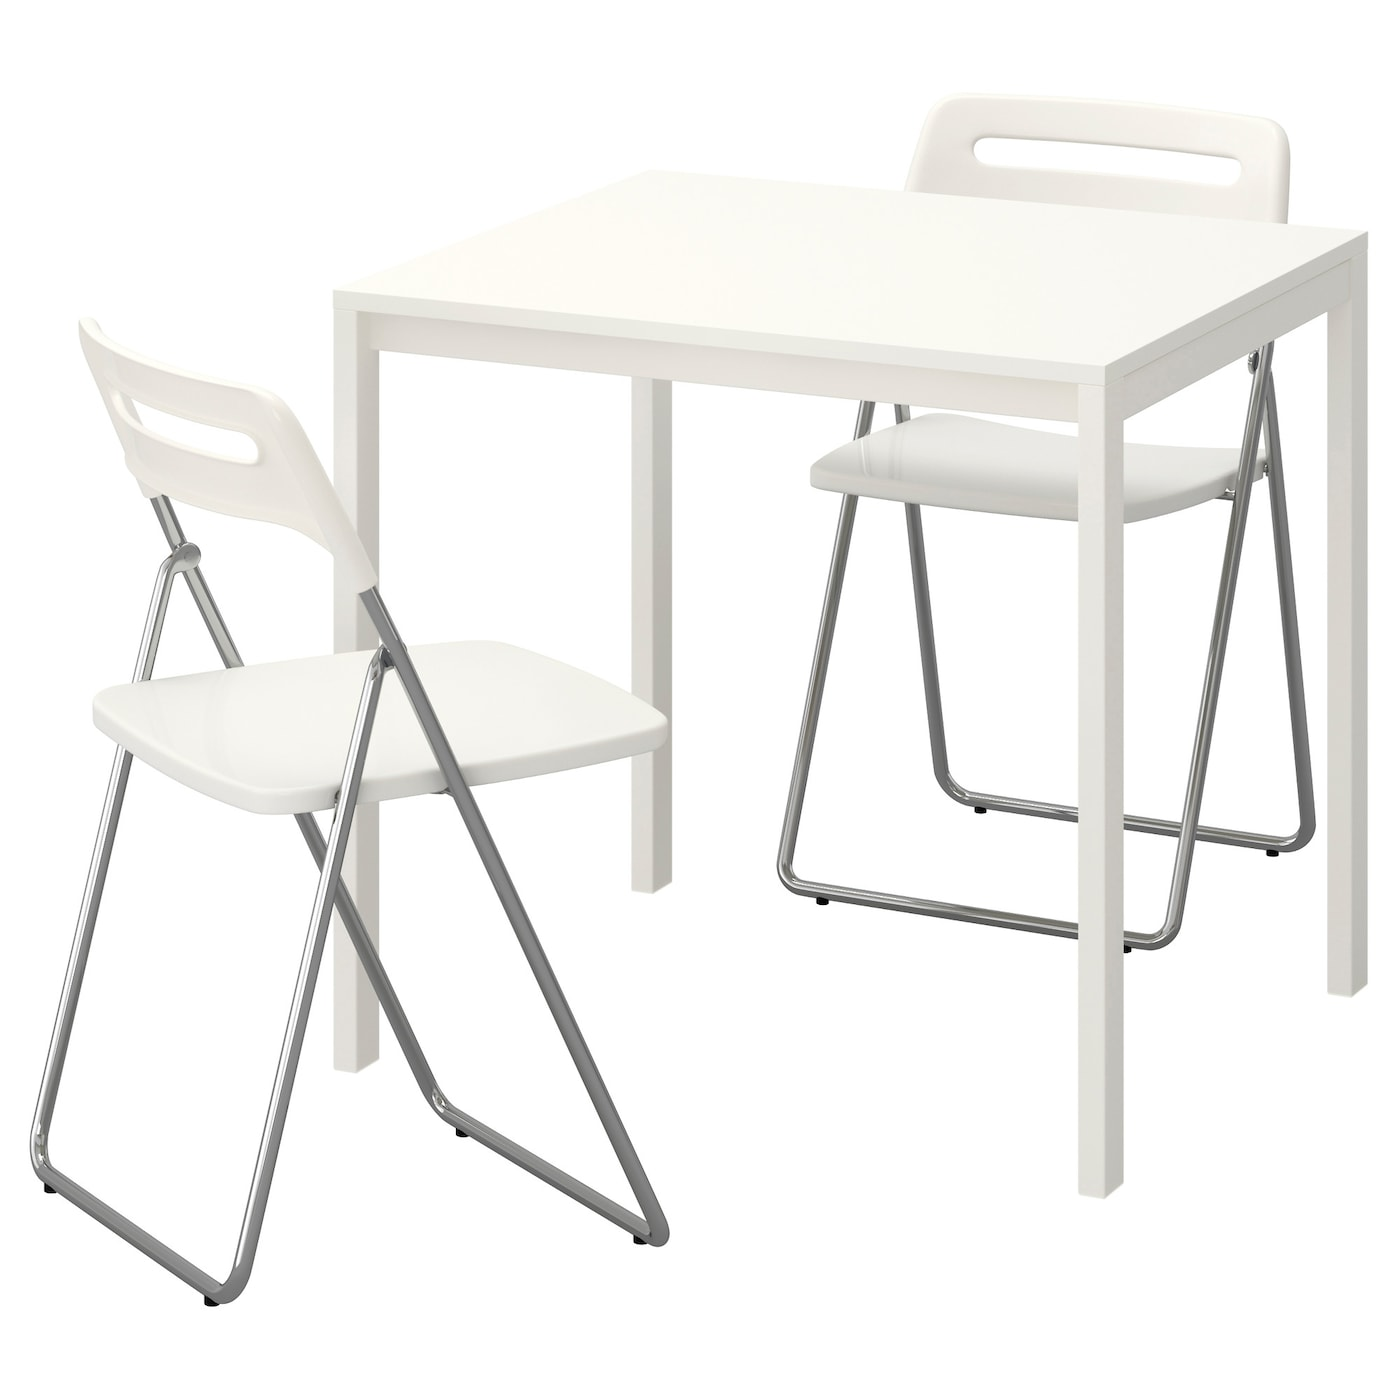 NISSE MELLTORP Table and 2 folding chairs White white 75 cm IKEA